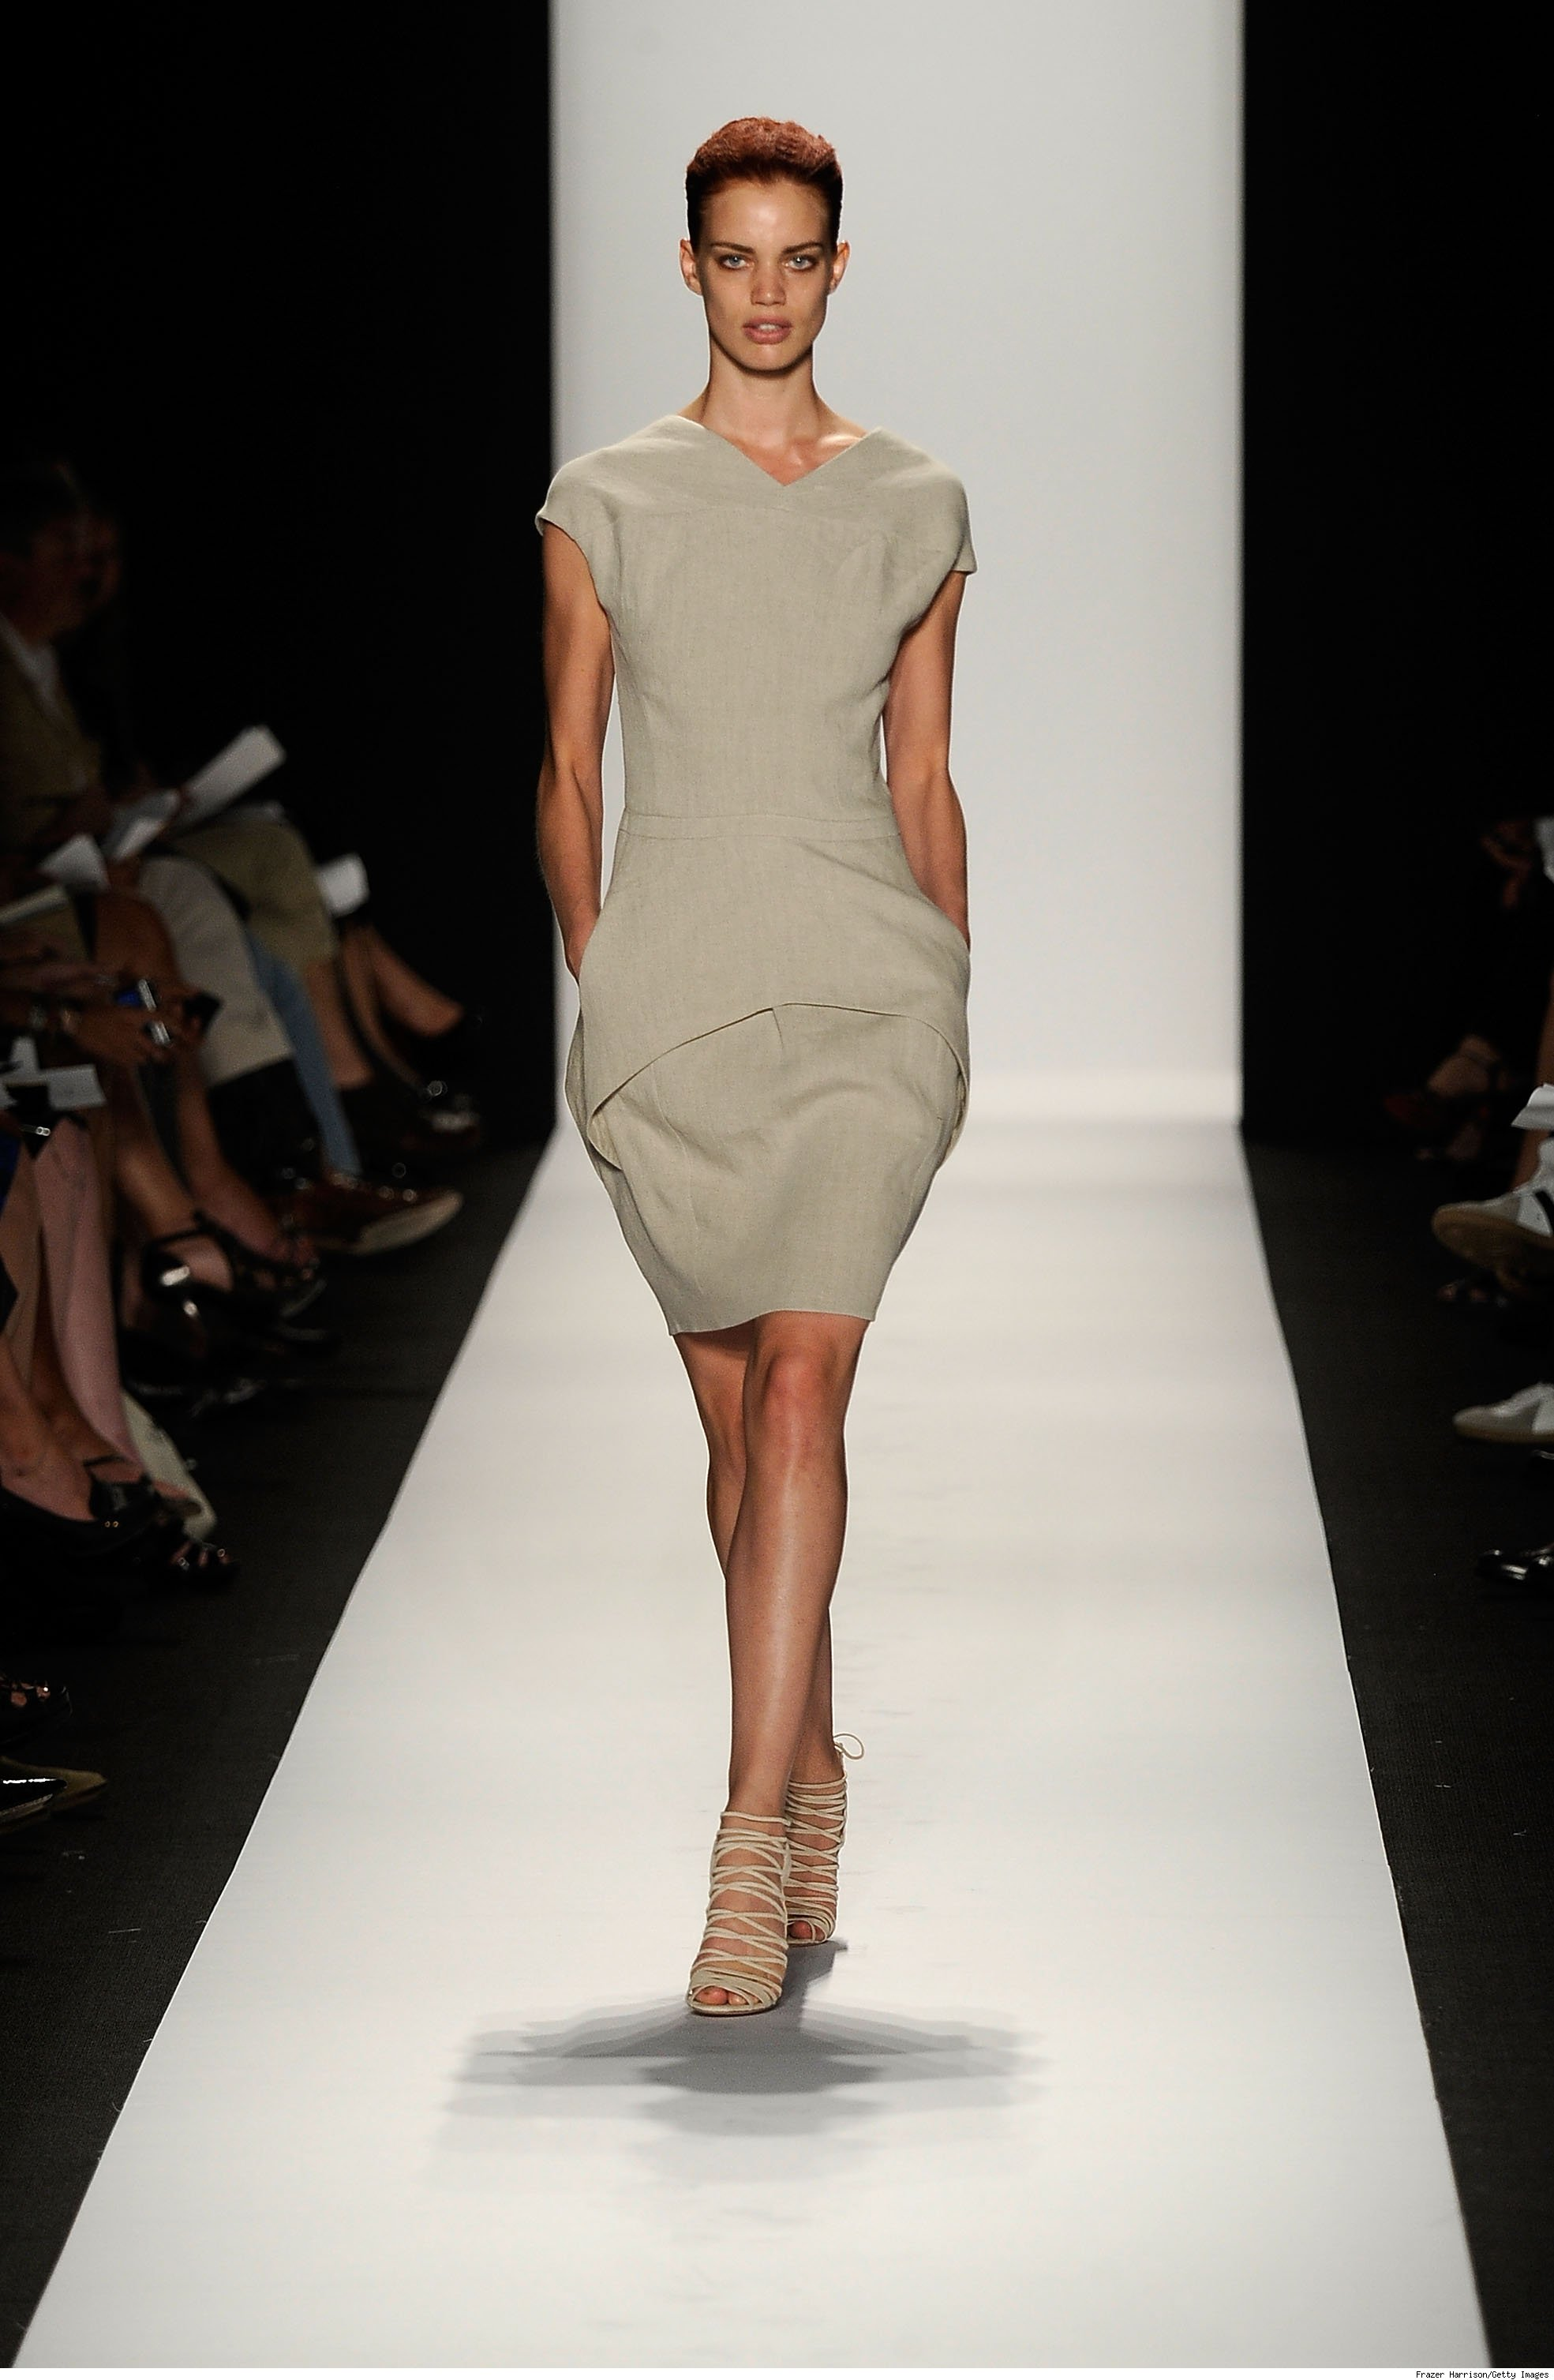 model walks the runway at Narciso Rodriguez Spring 2010 fashion show